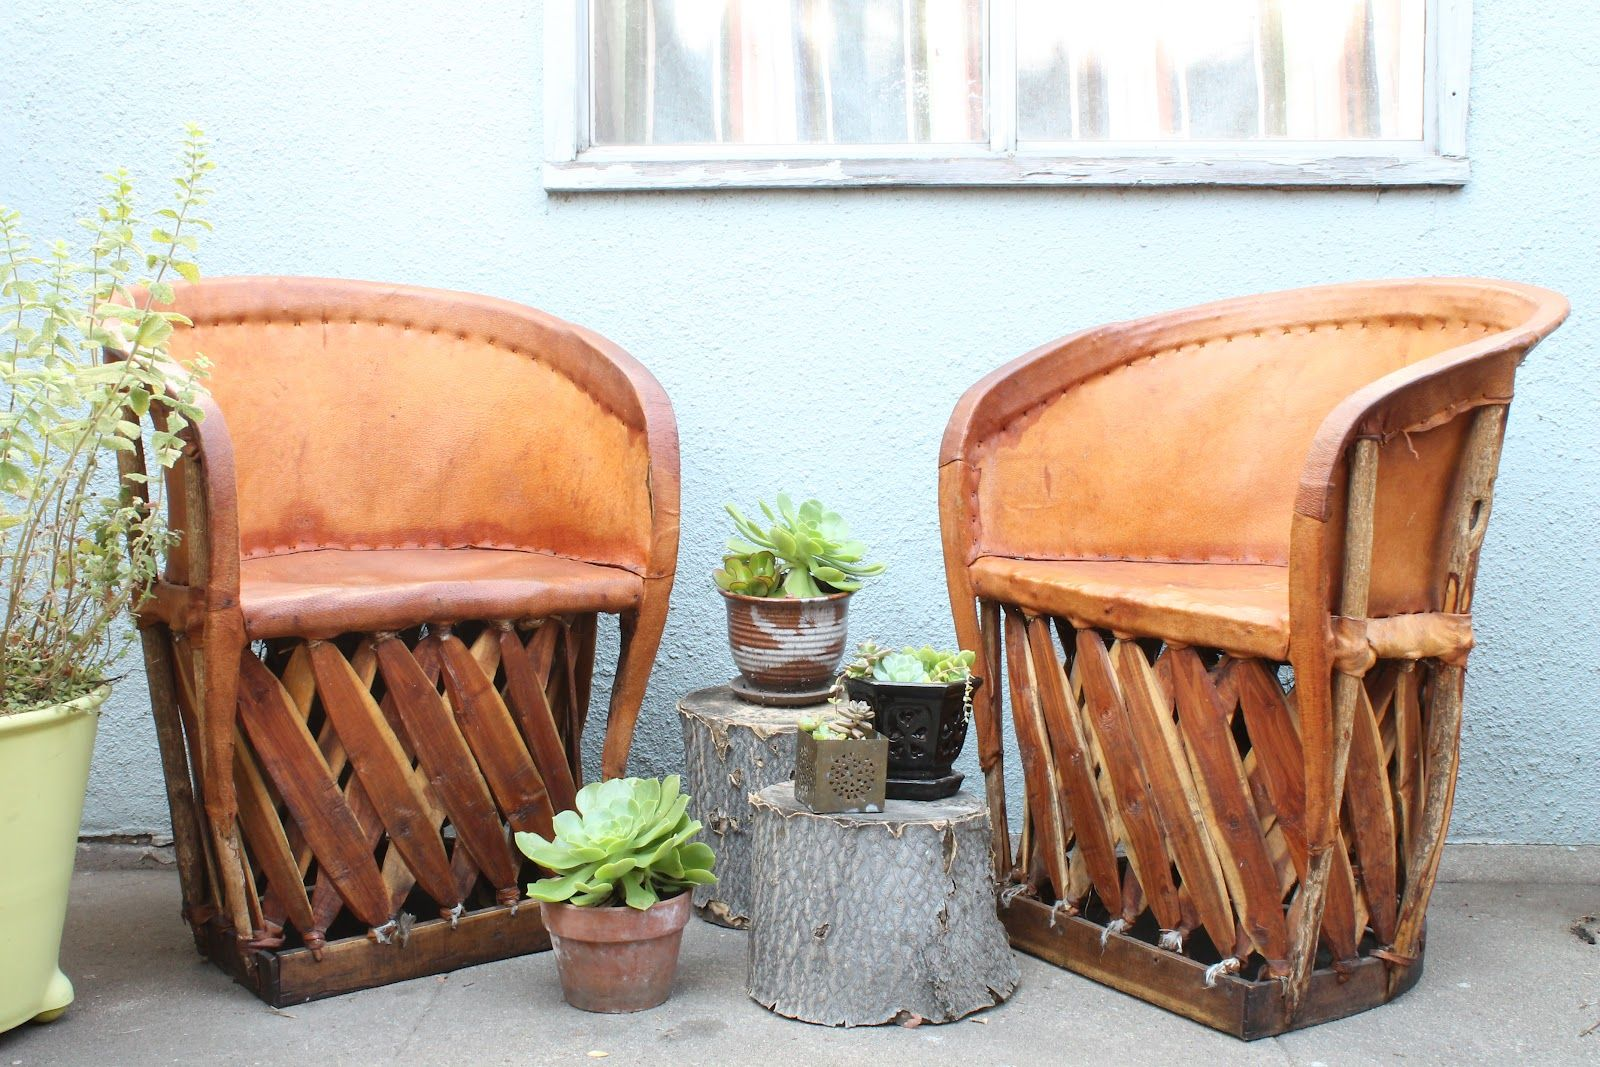 Mexican Equipale Chairs Sold On Craigslist